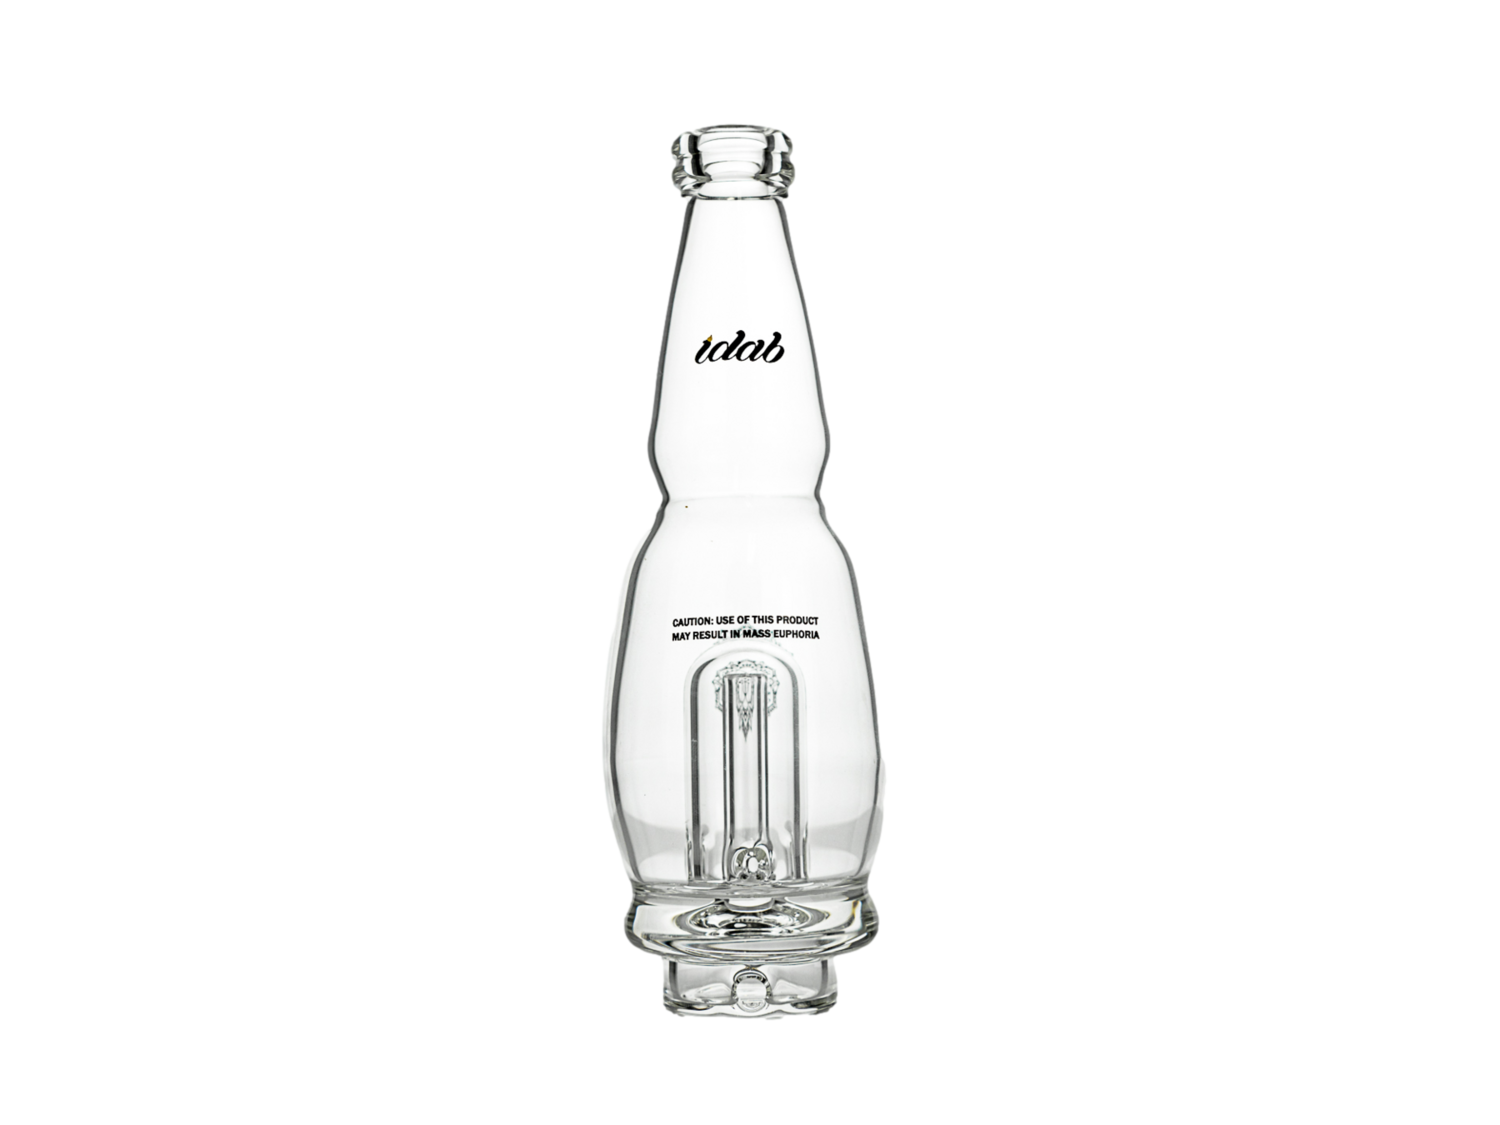 iDab Beer Me Bottle Puffco Attachment